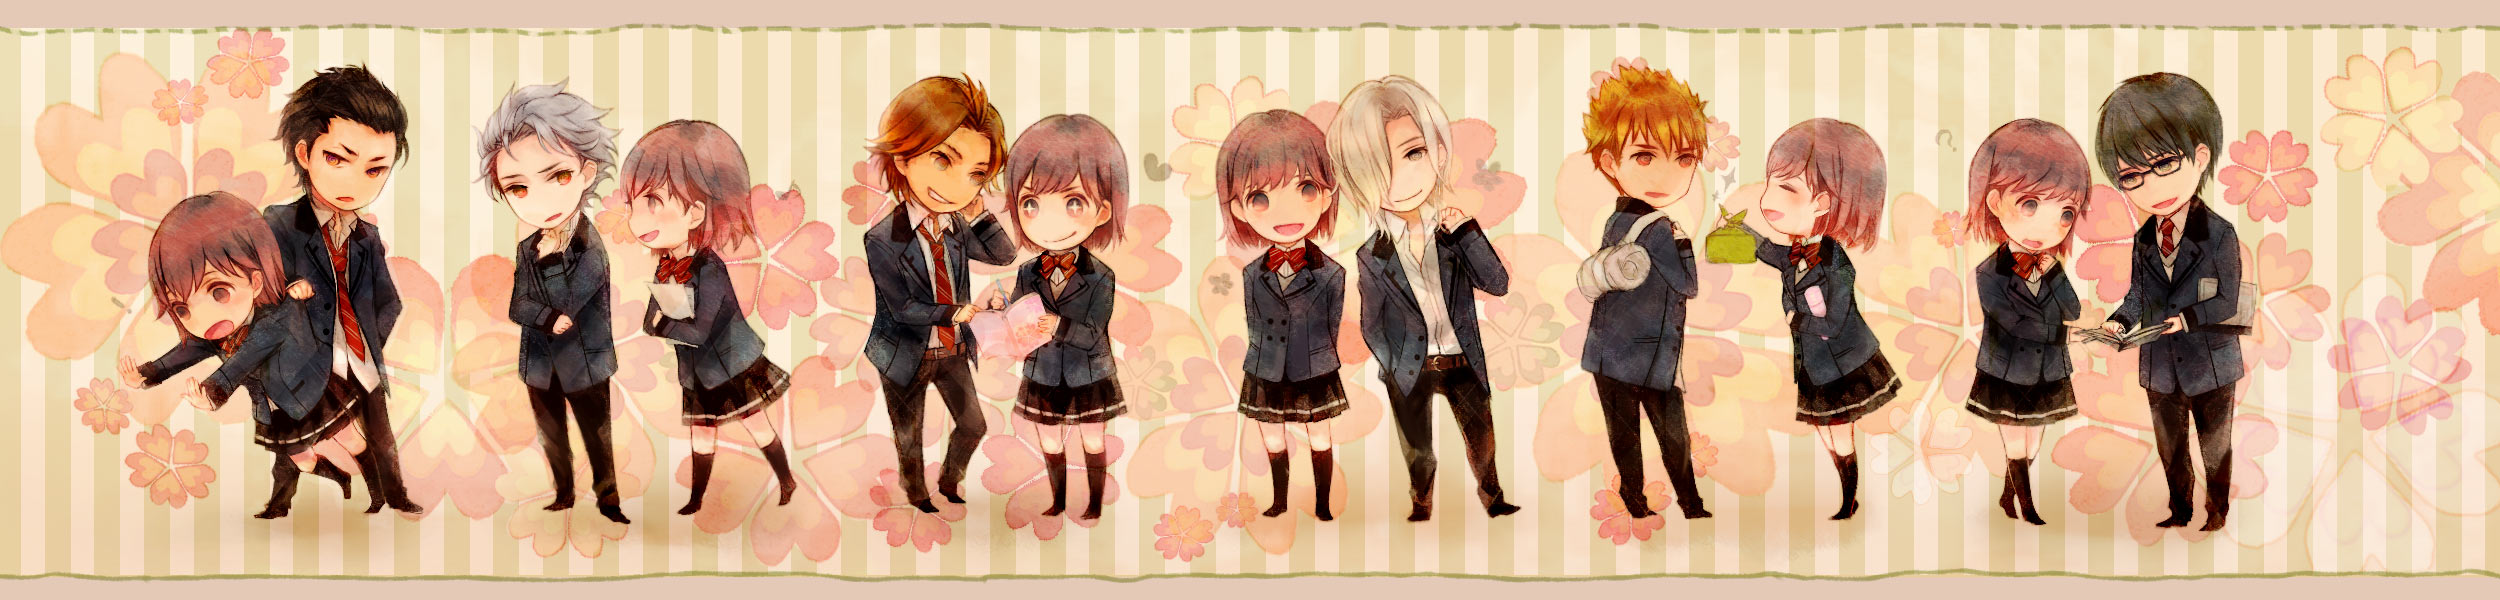 tokimeki memorial girls side